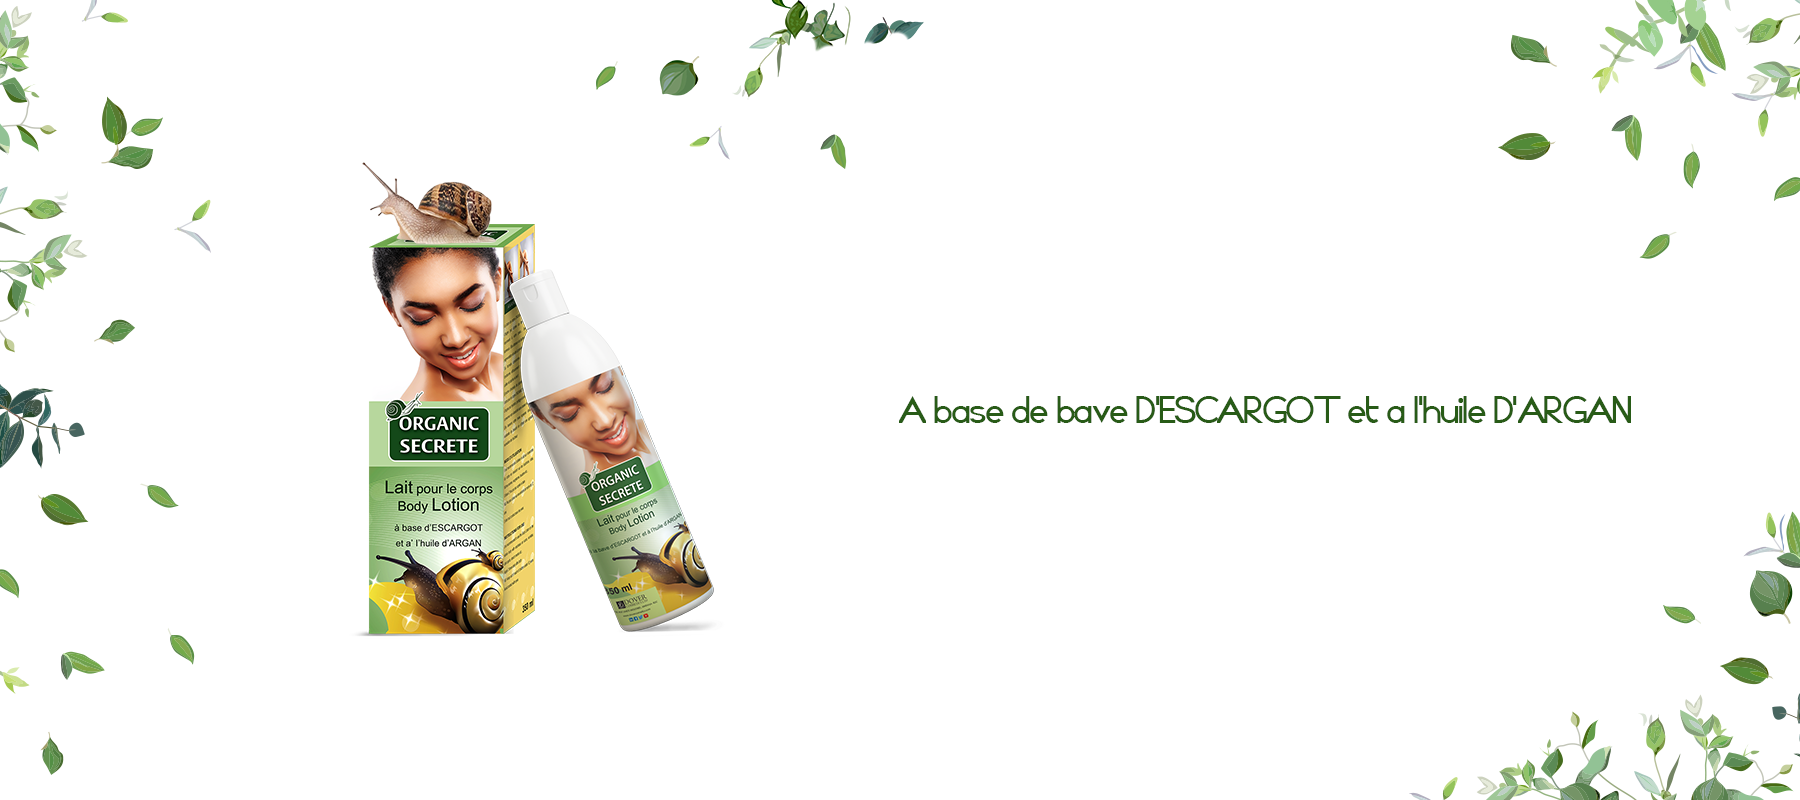 Banner of Organic Secret Products